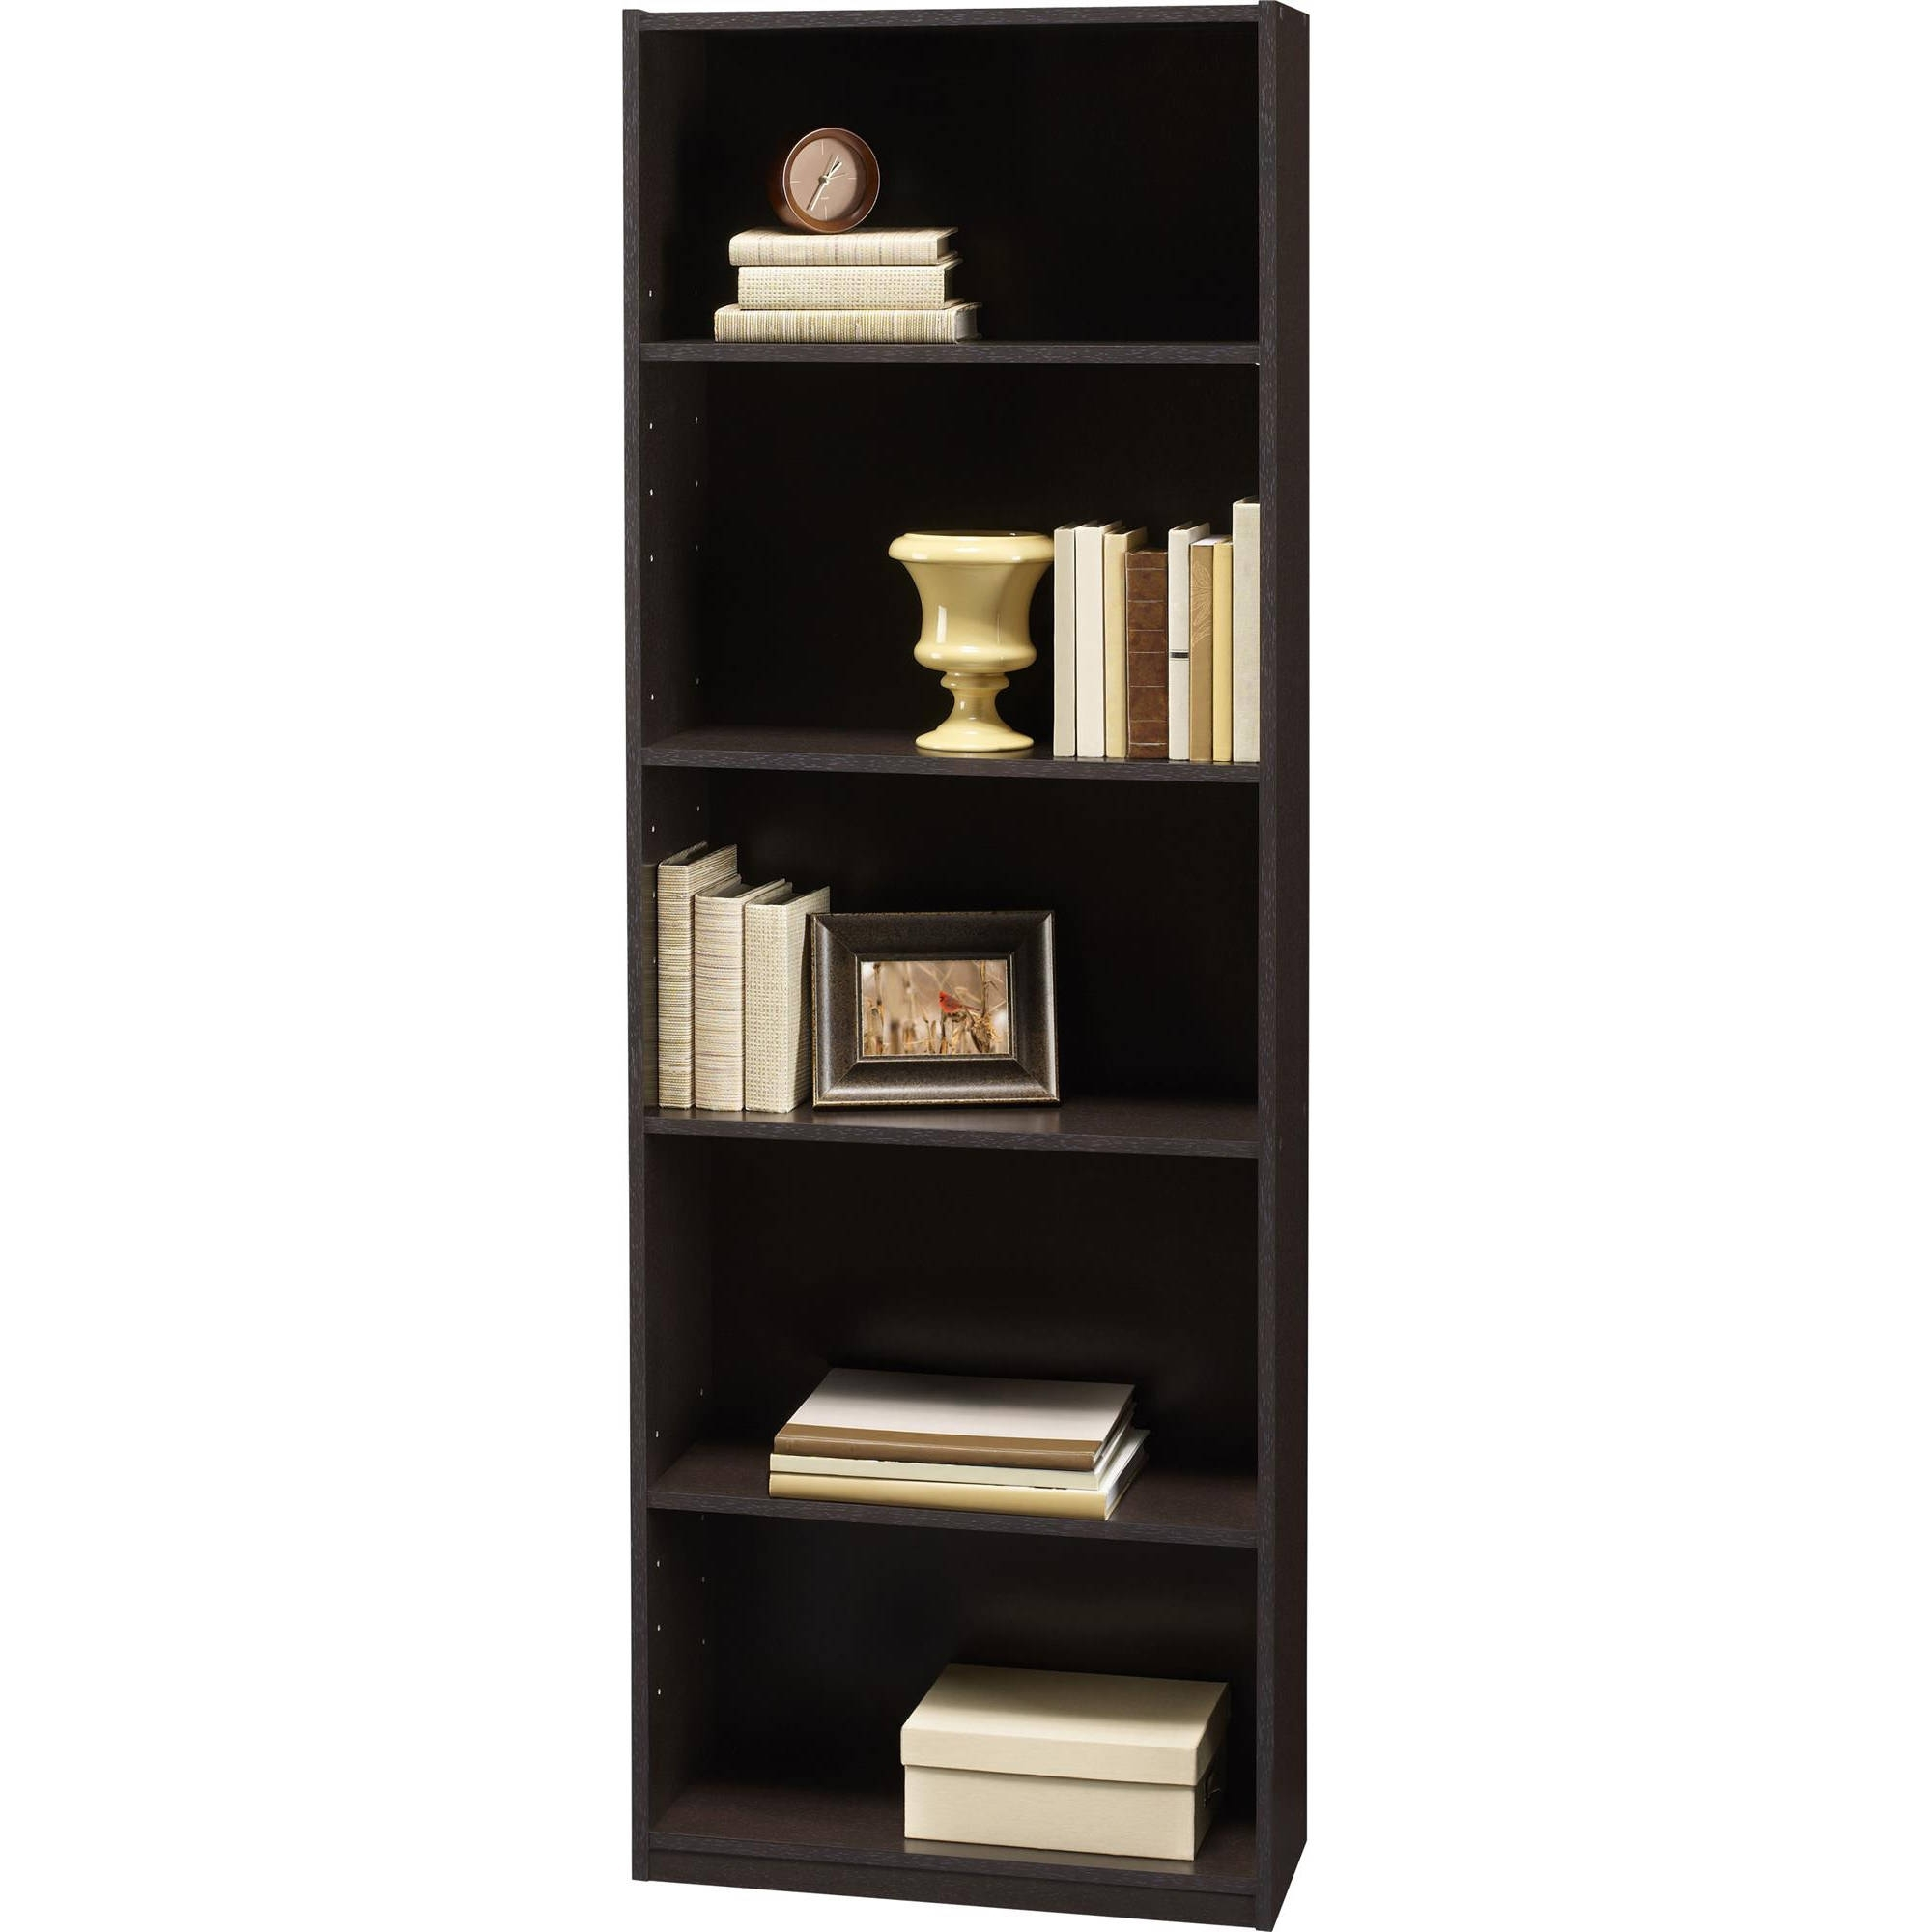 Ameriwood 3 Shelf And 5 Shelf Bookcases (Mix And Match) – Walmart Pertaining To Famous Walmart Bookcases (View 1 of 15)